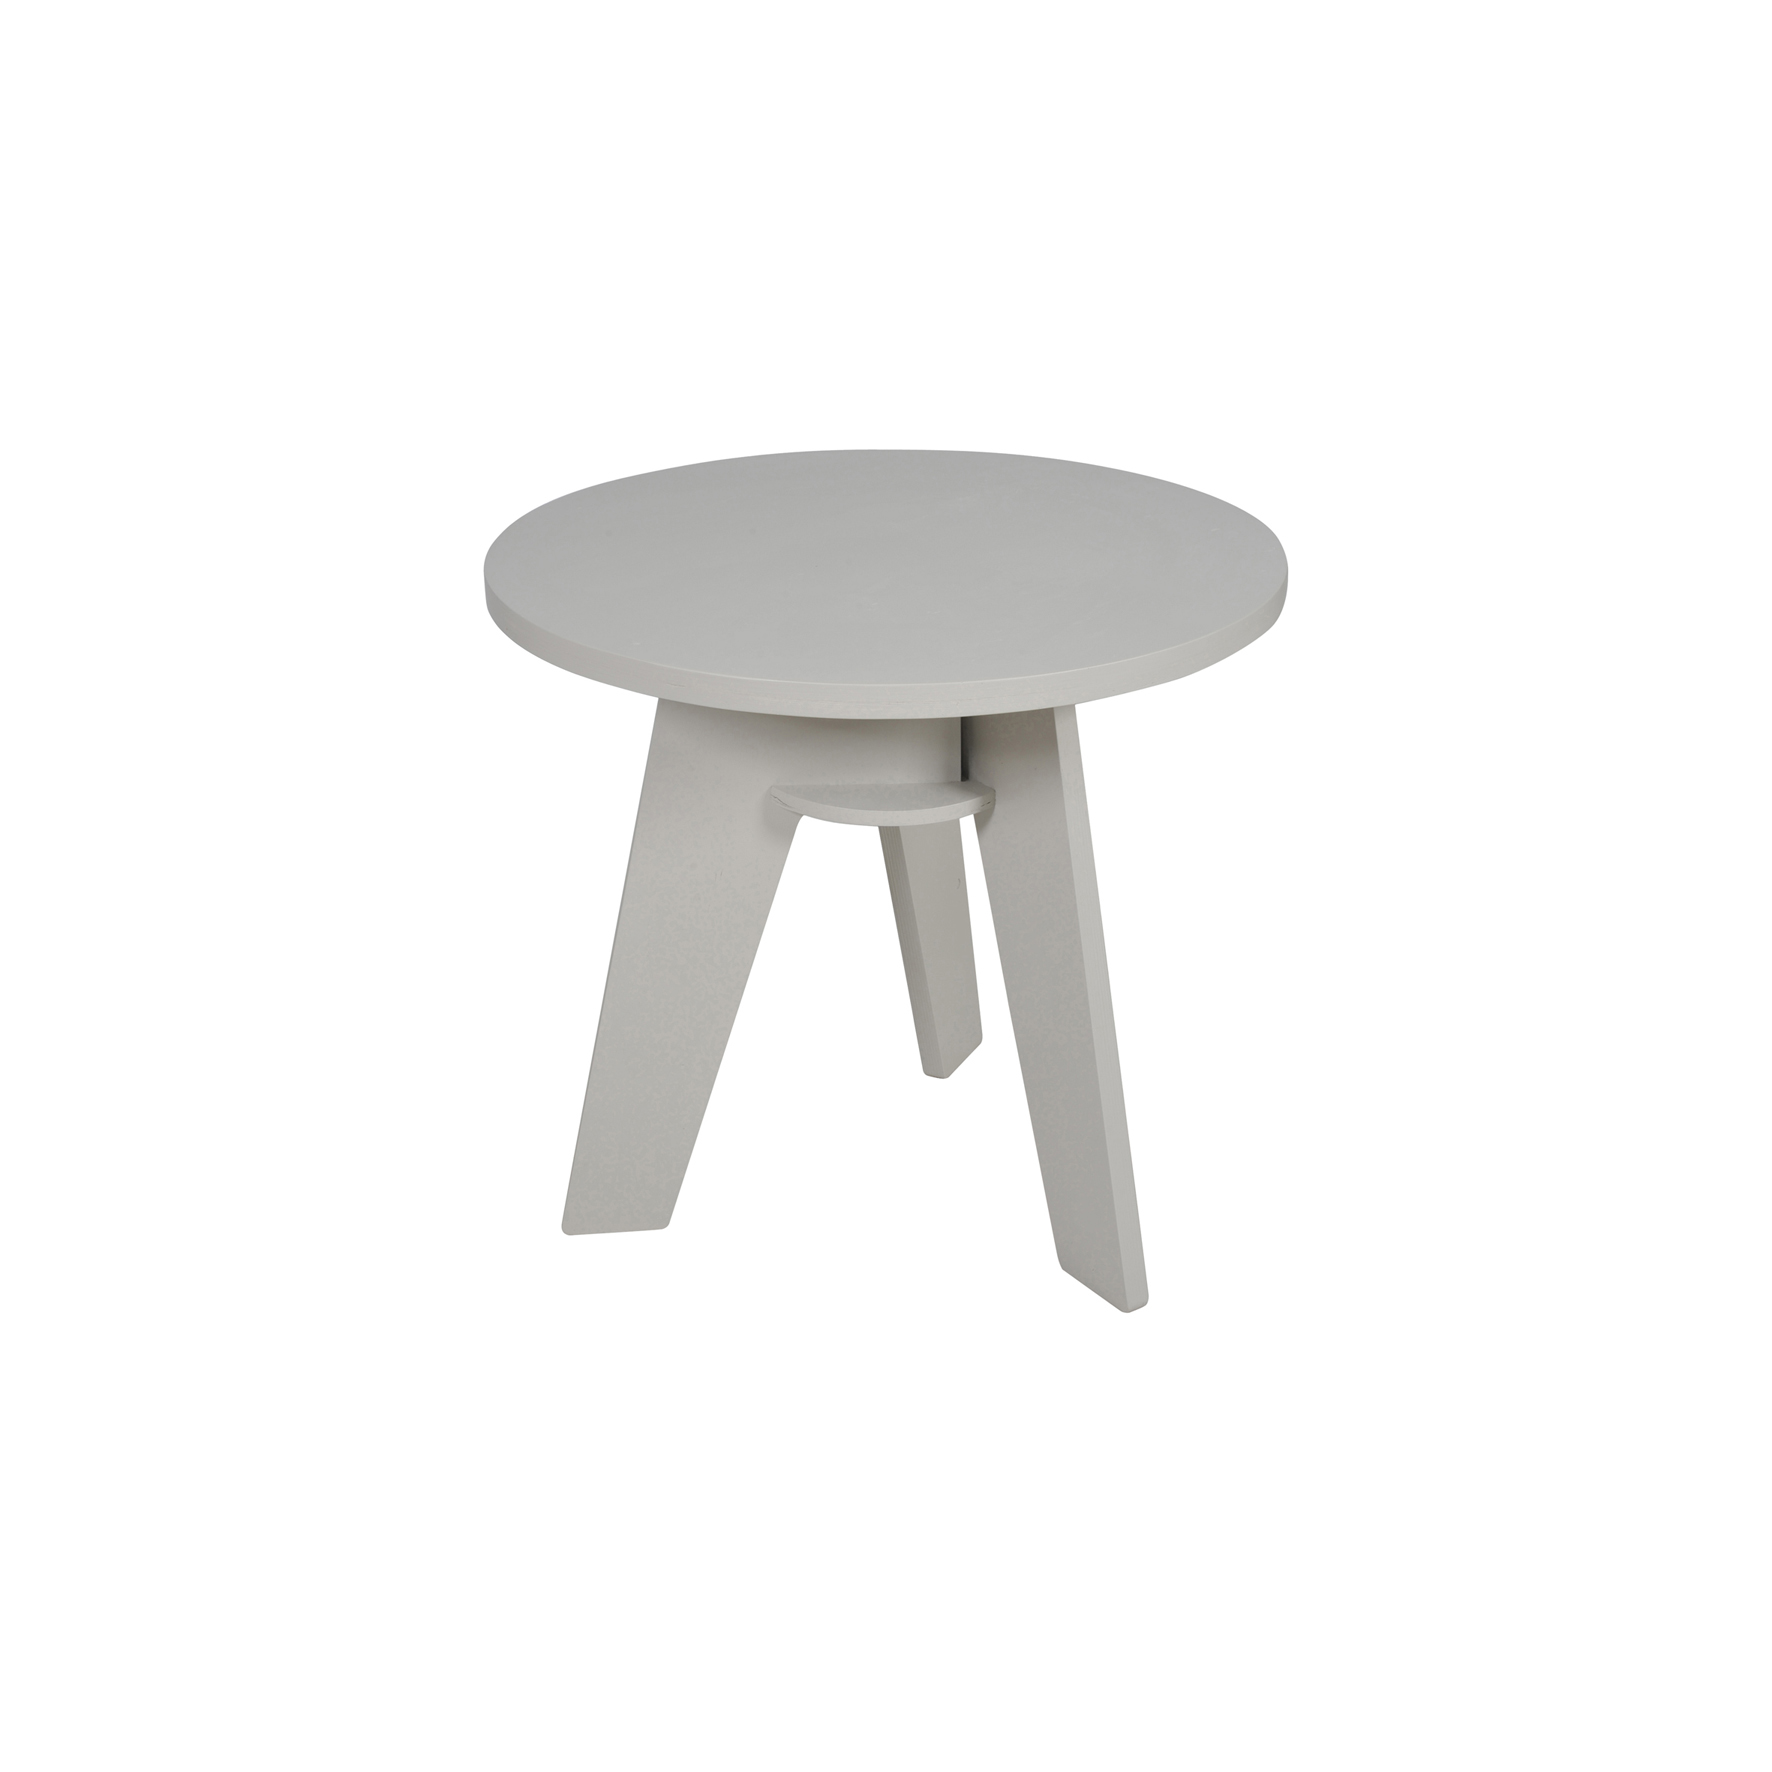 Crisis 2014 table round lacquered